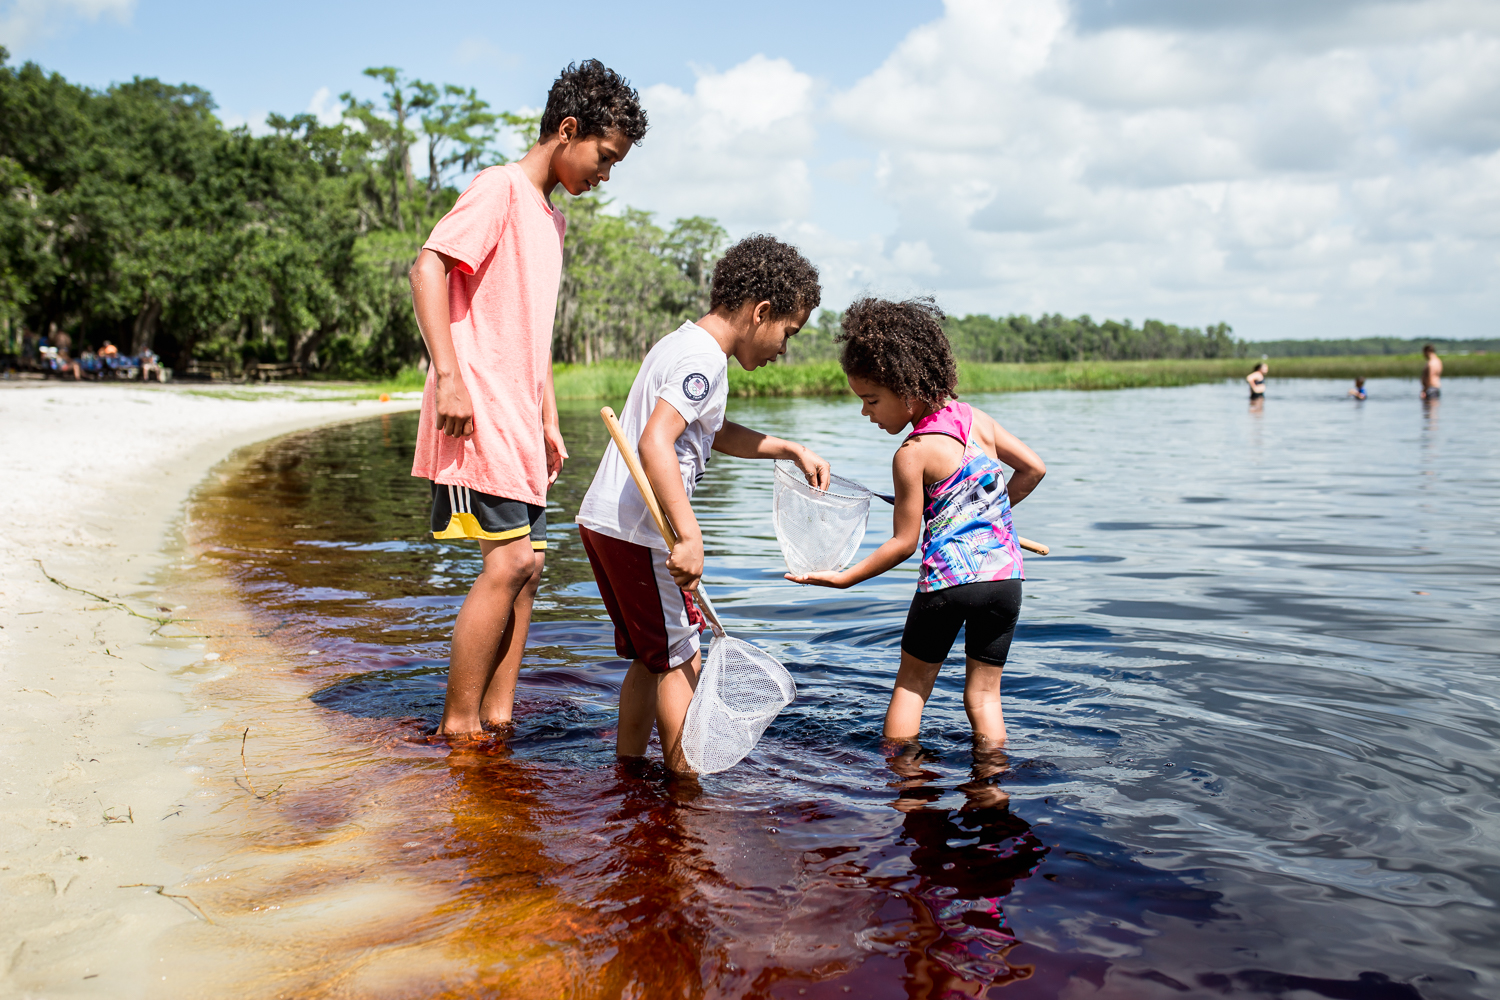 Children play in the water at Lake Louisa State Park in Clermont, Florida.